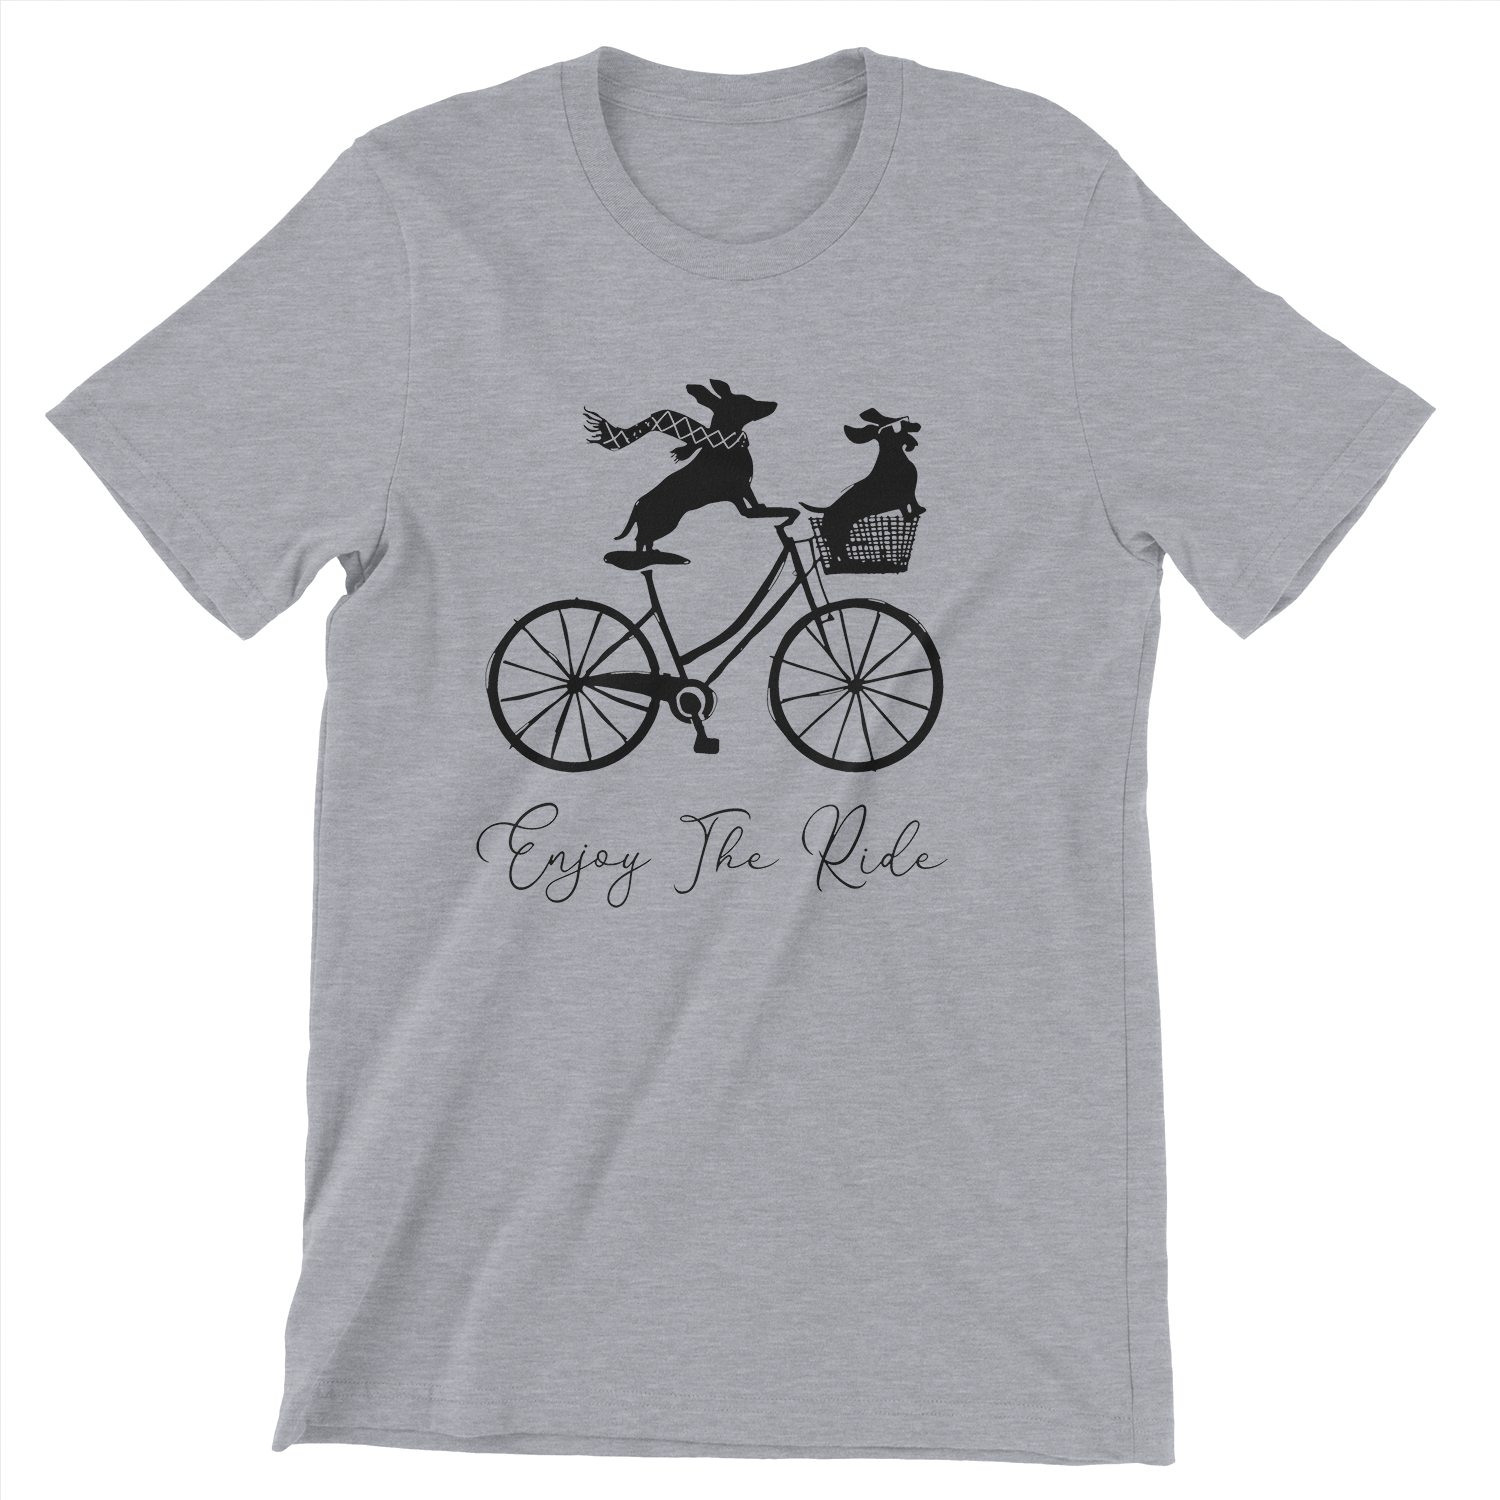 Enjoy The Ride Unisex Tee